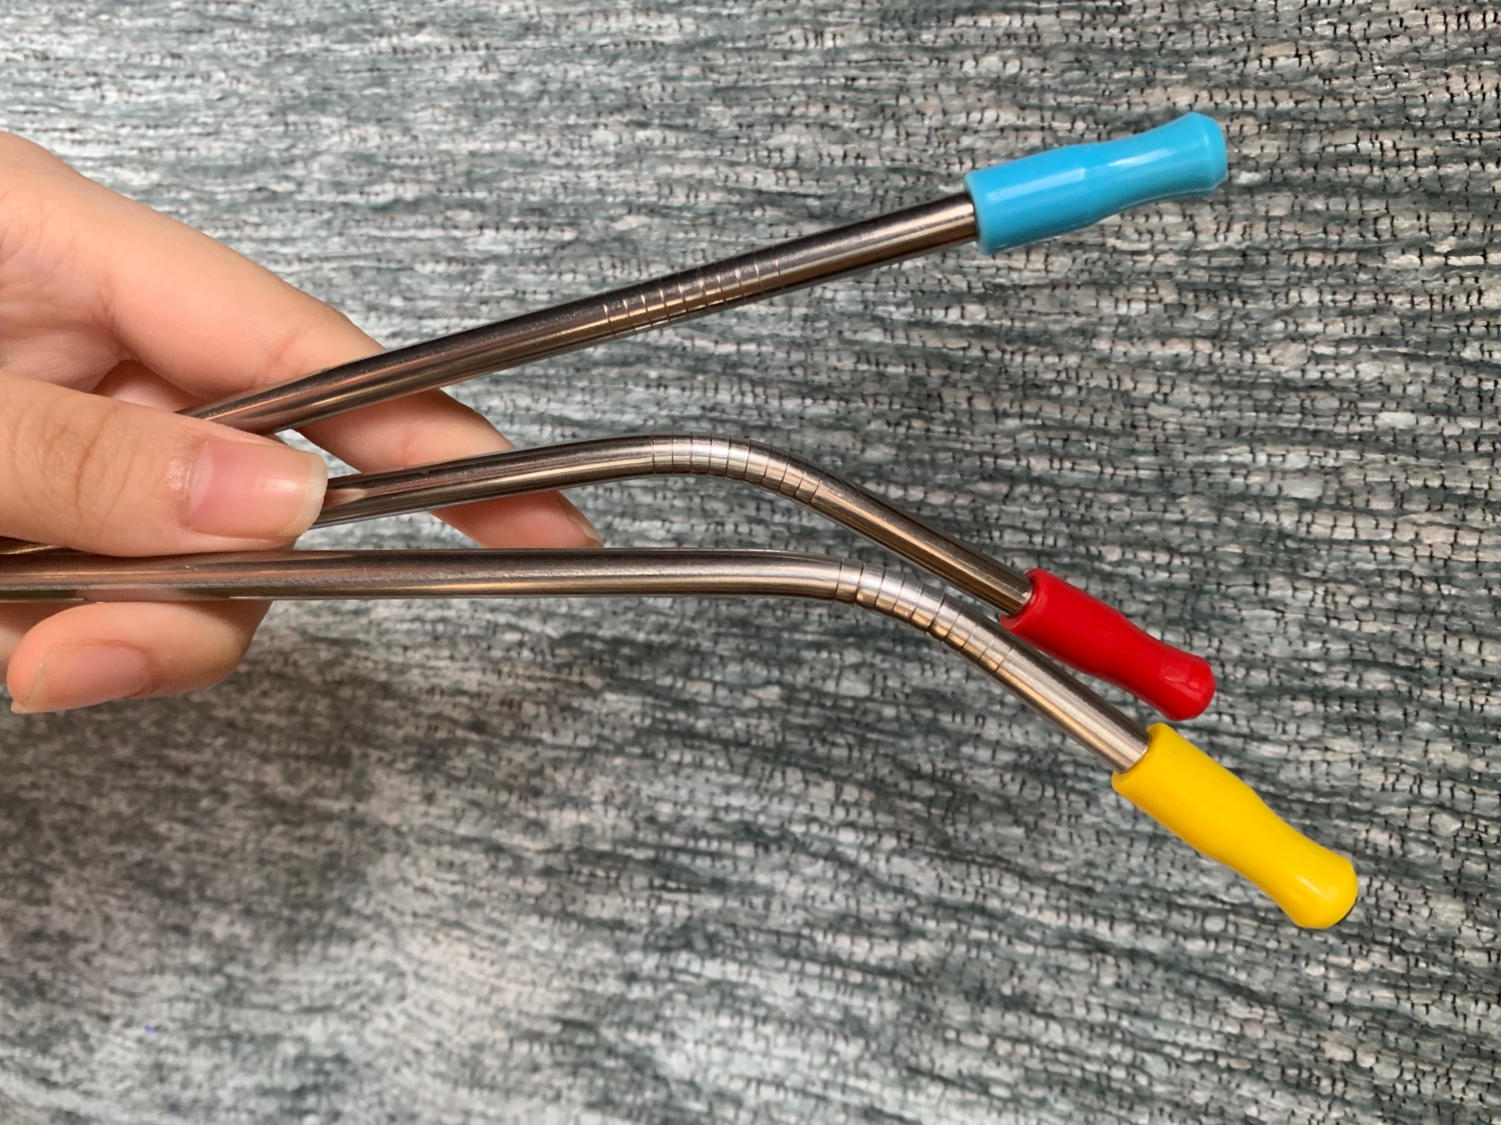 Metal straws can be a more environmentally-friendly approach to your iced latte.